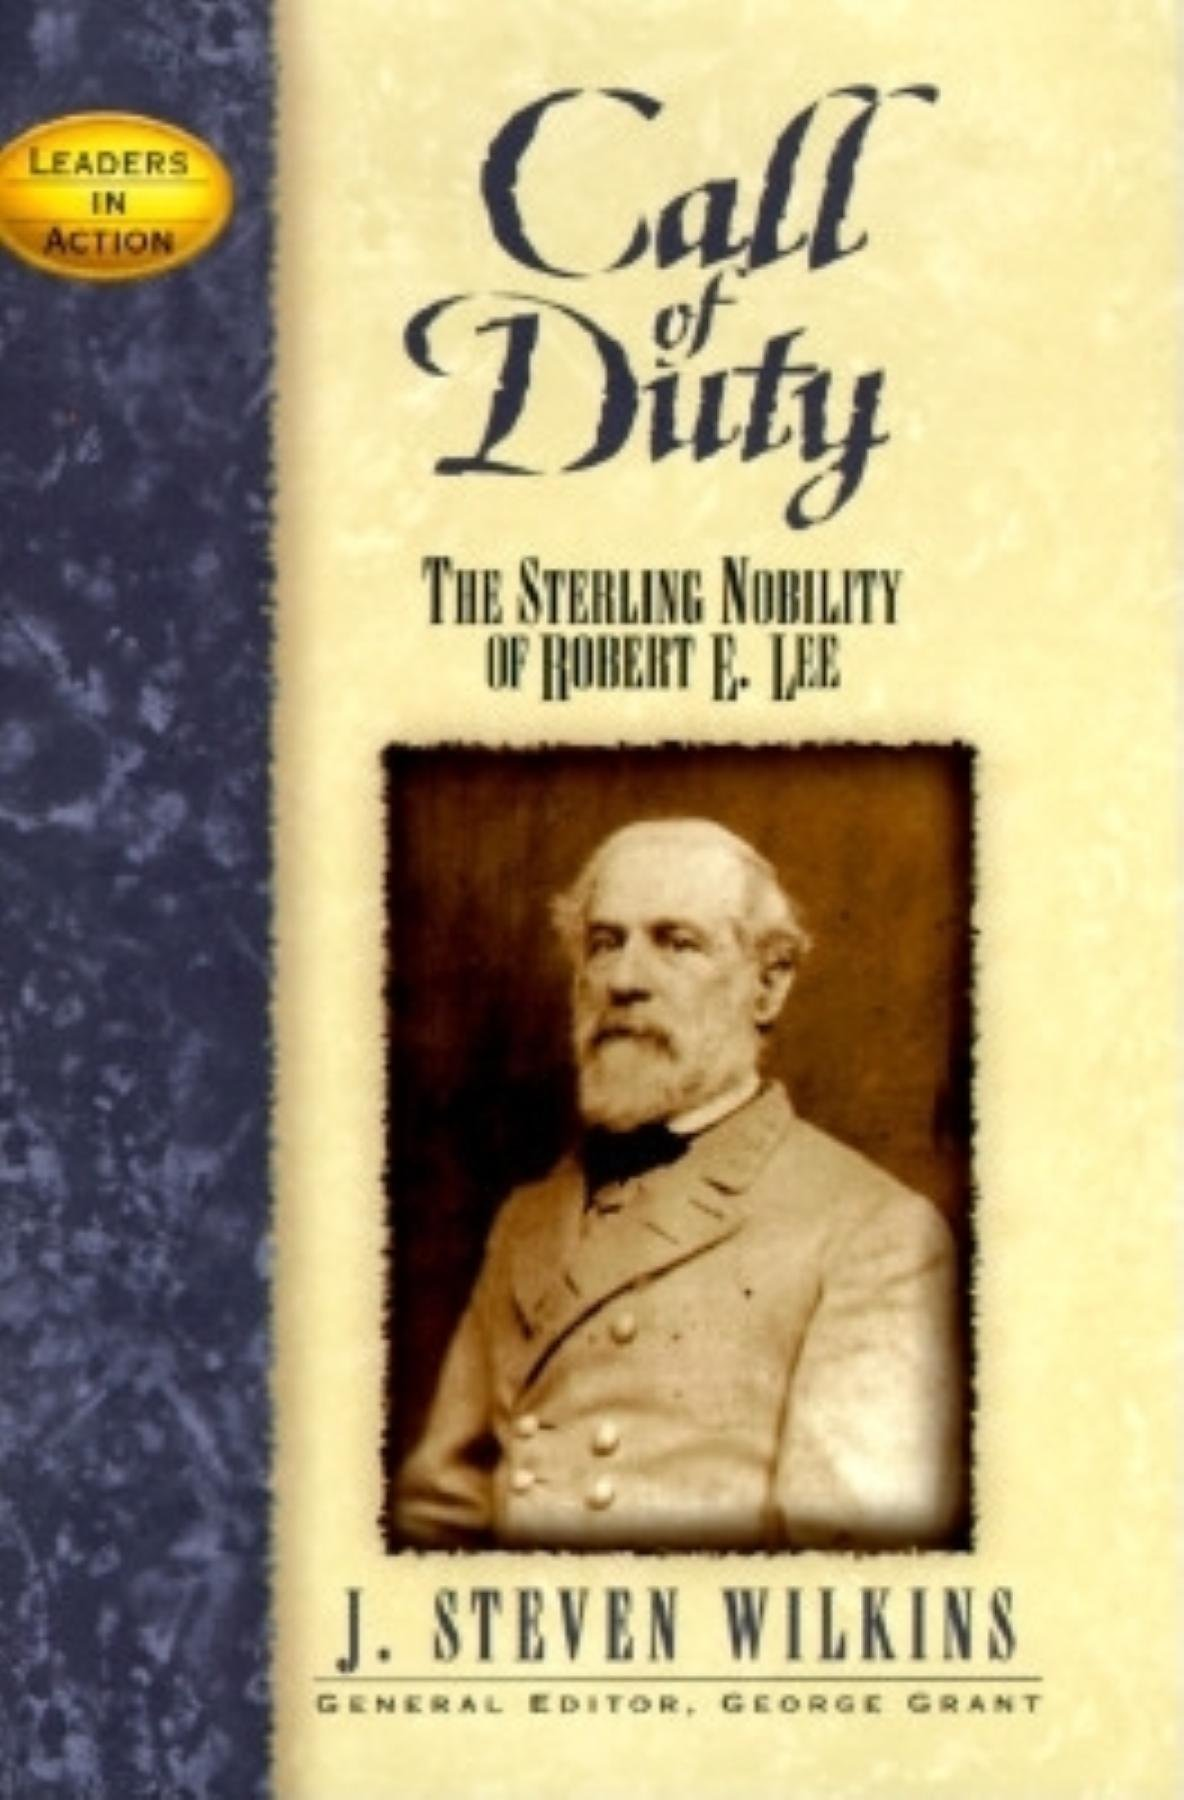 call-of-duty-the-sterling-nobility-of-robert-e-lee-leaders-in-action